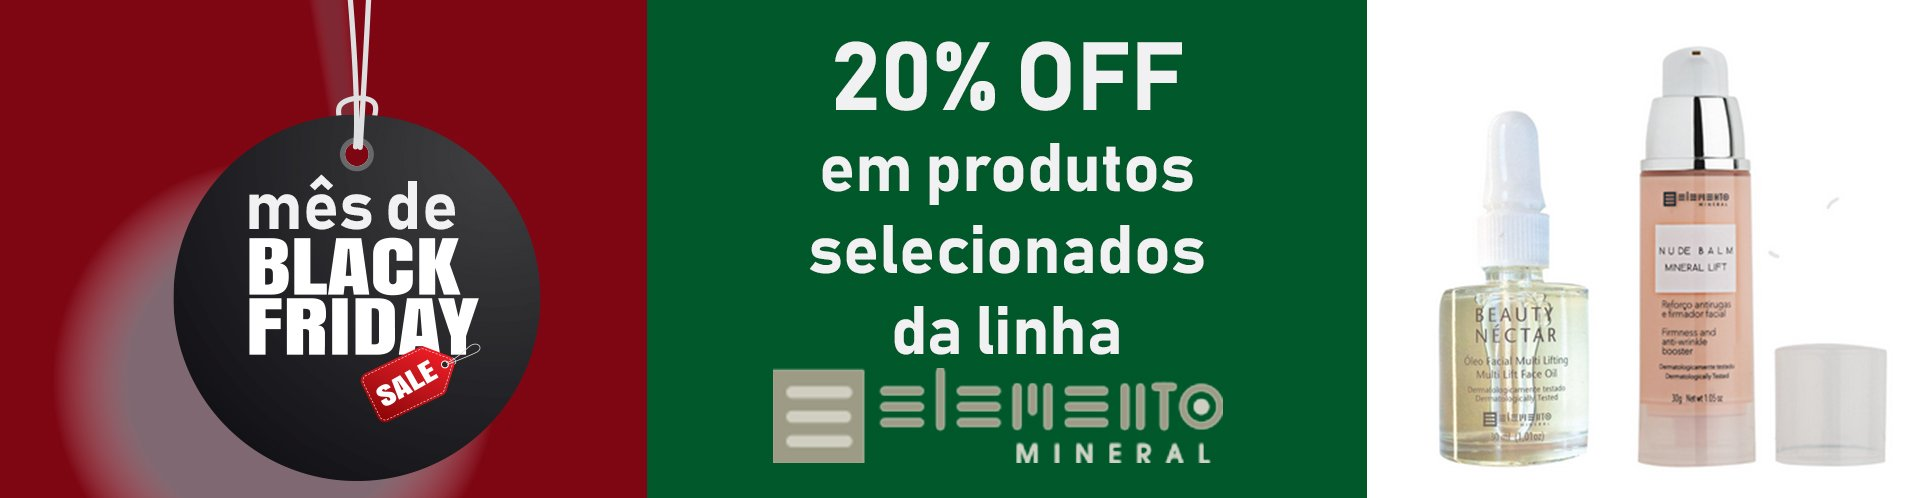 black friday elemento mineral